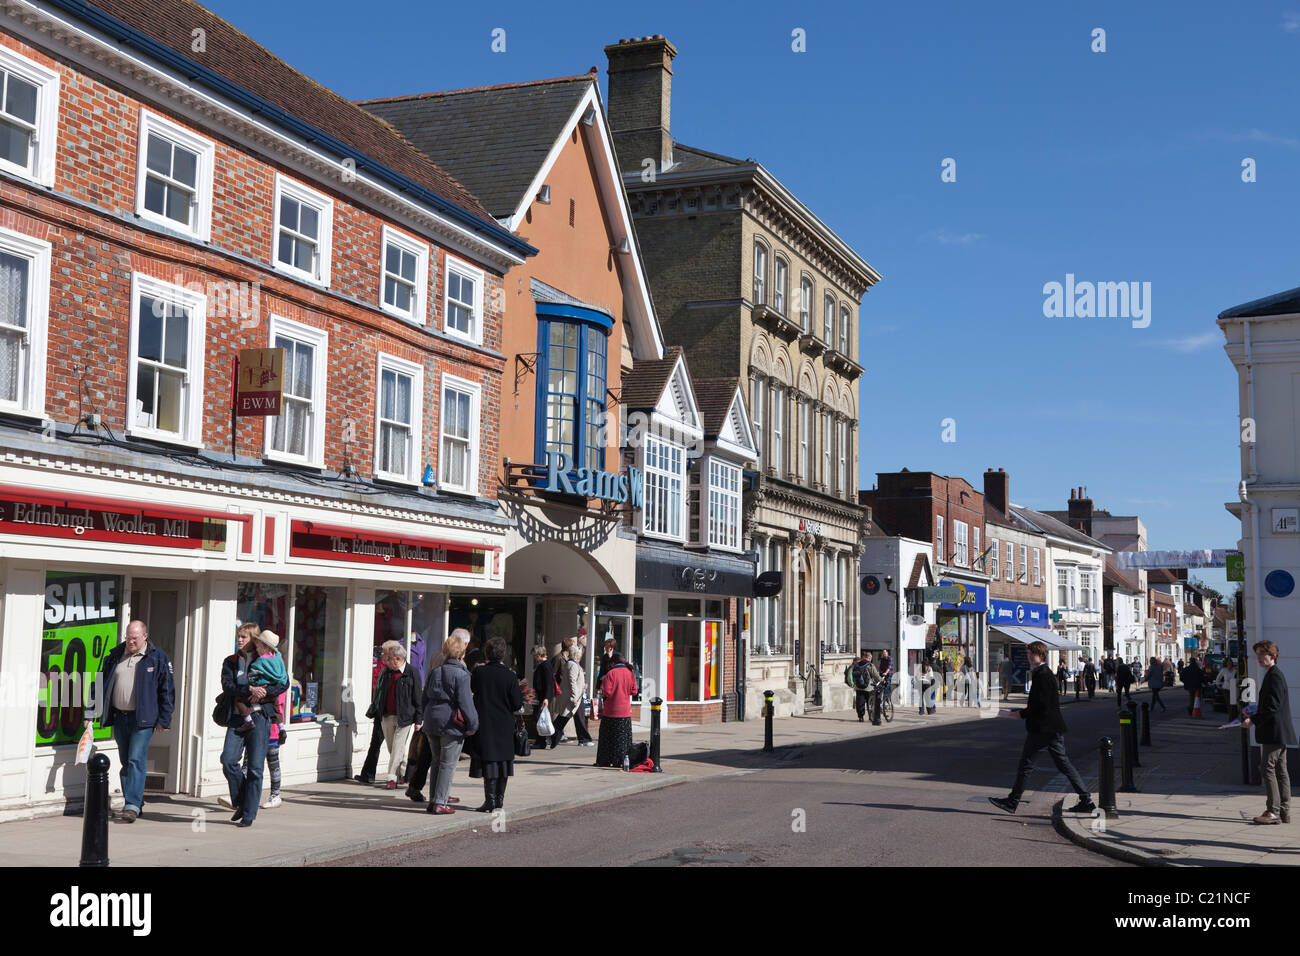 Petersfield town centre high street - Stock Image